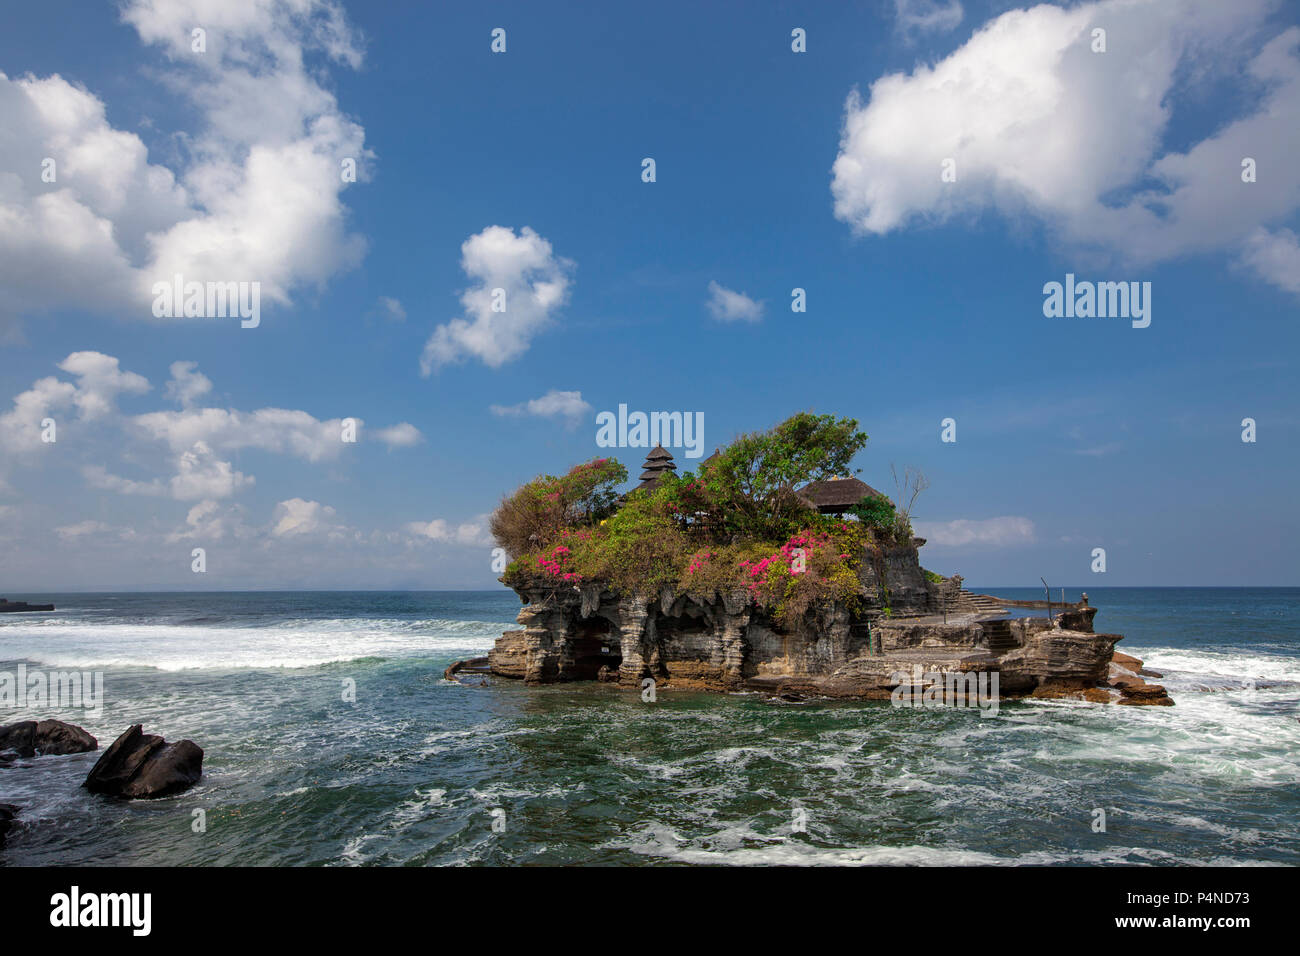 Tanah Lot Temple in Bali Indonesia - nature and architecture background - Stock Image